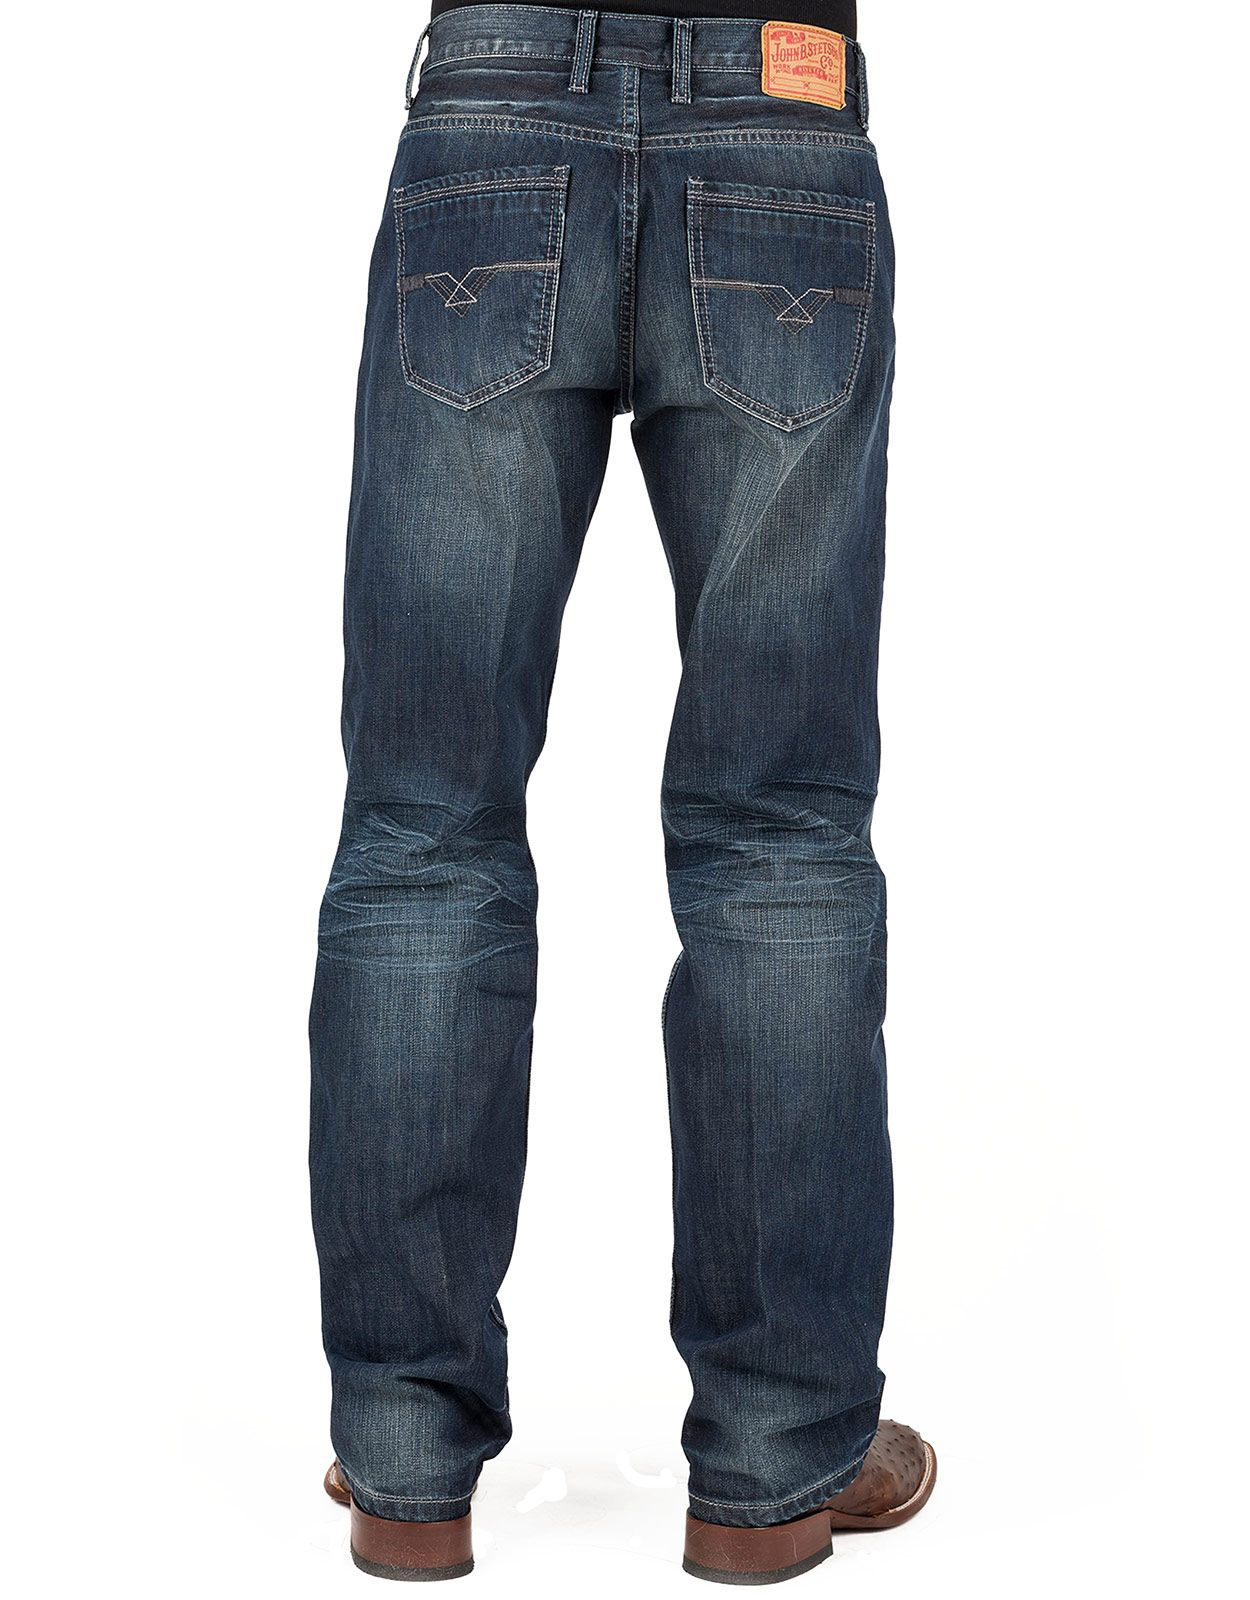 Stetson Men's 1312 Modern Fit Low Rise Relaxed Fit Straight Leg Jeans - Dark Vintage (Closeout)